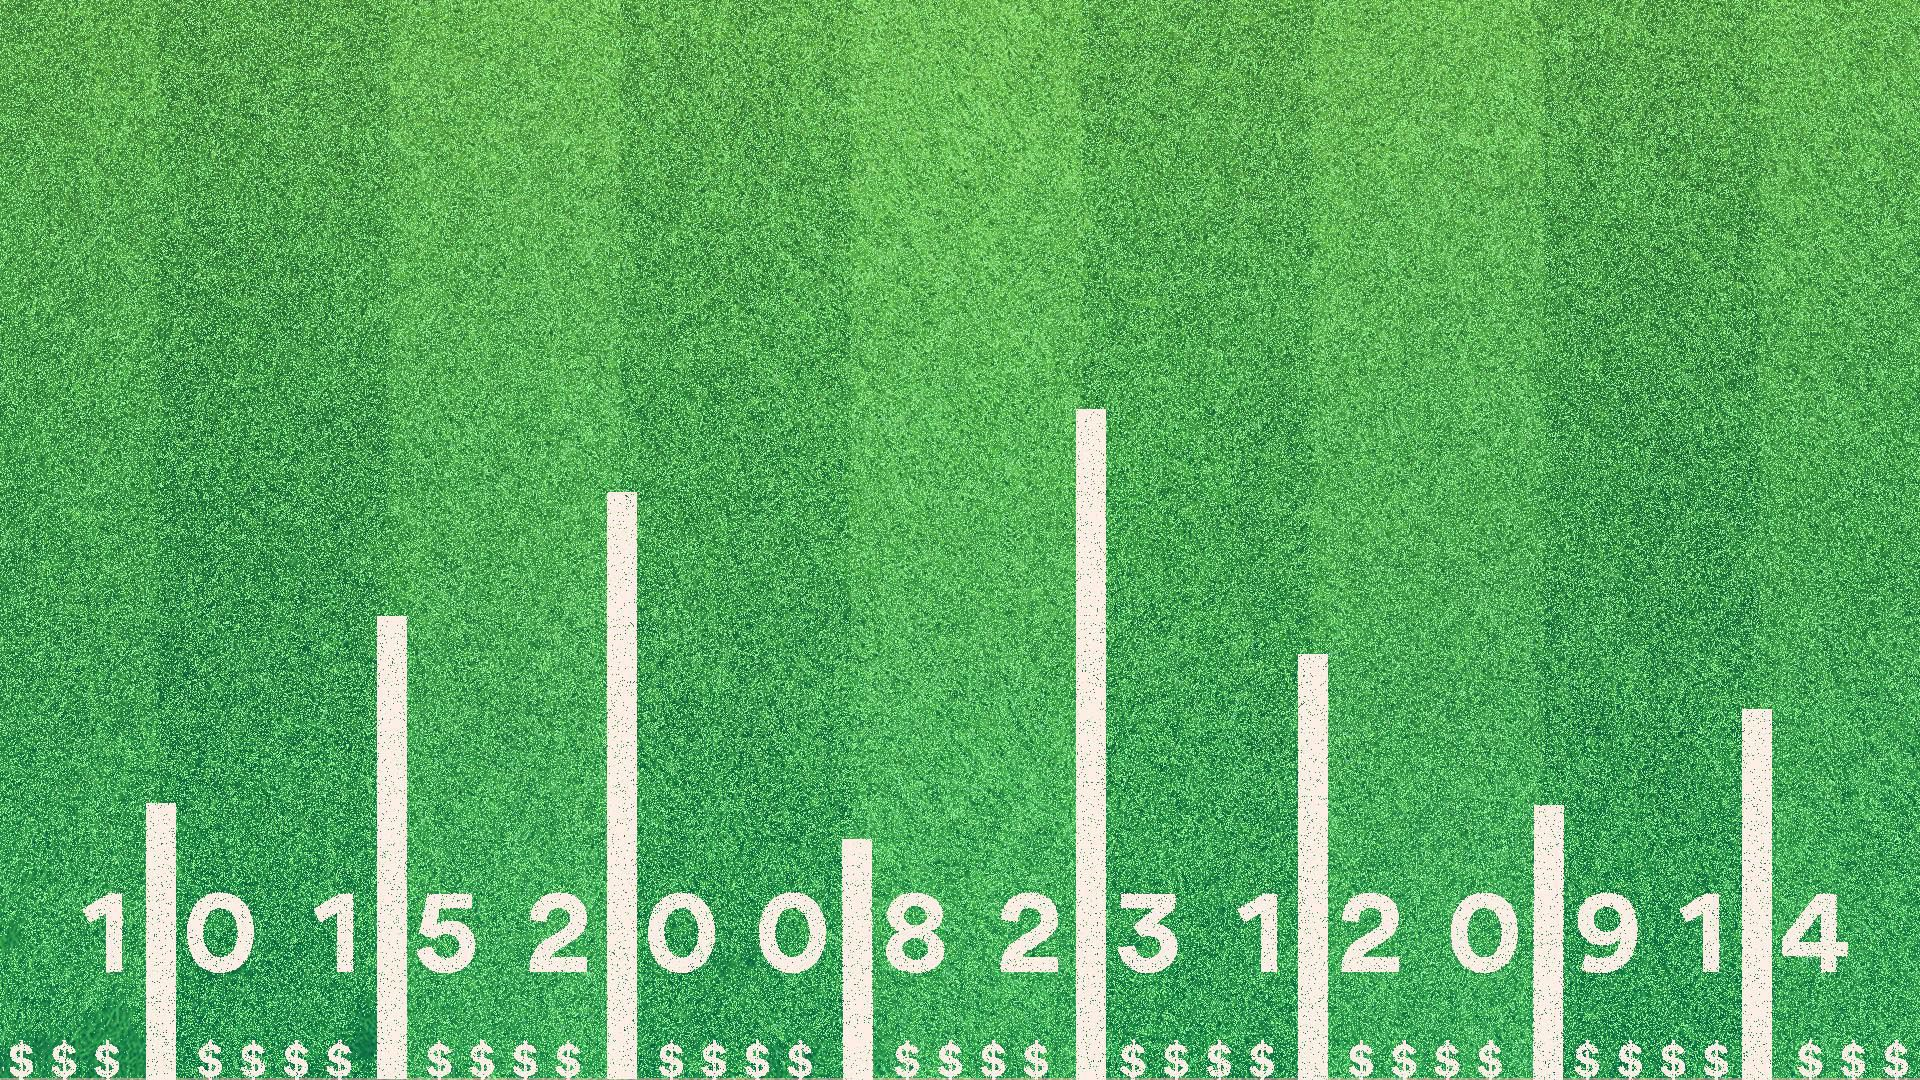 A football field with money ledger lines instead of yard lines